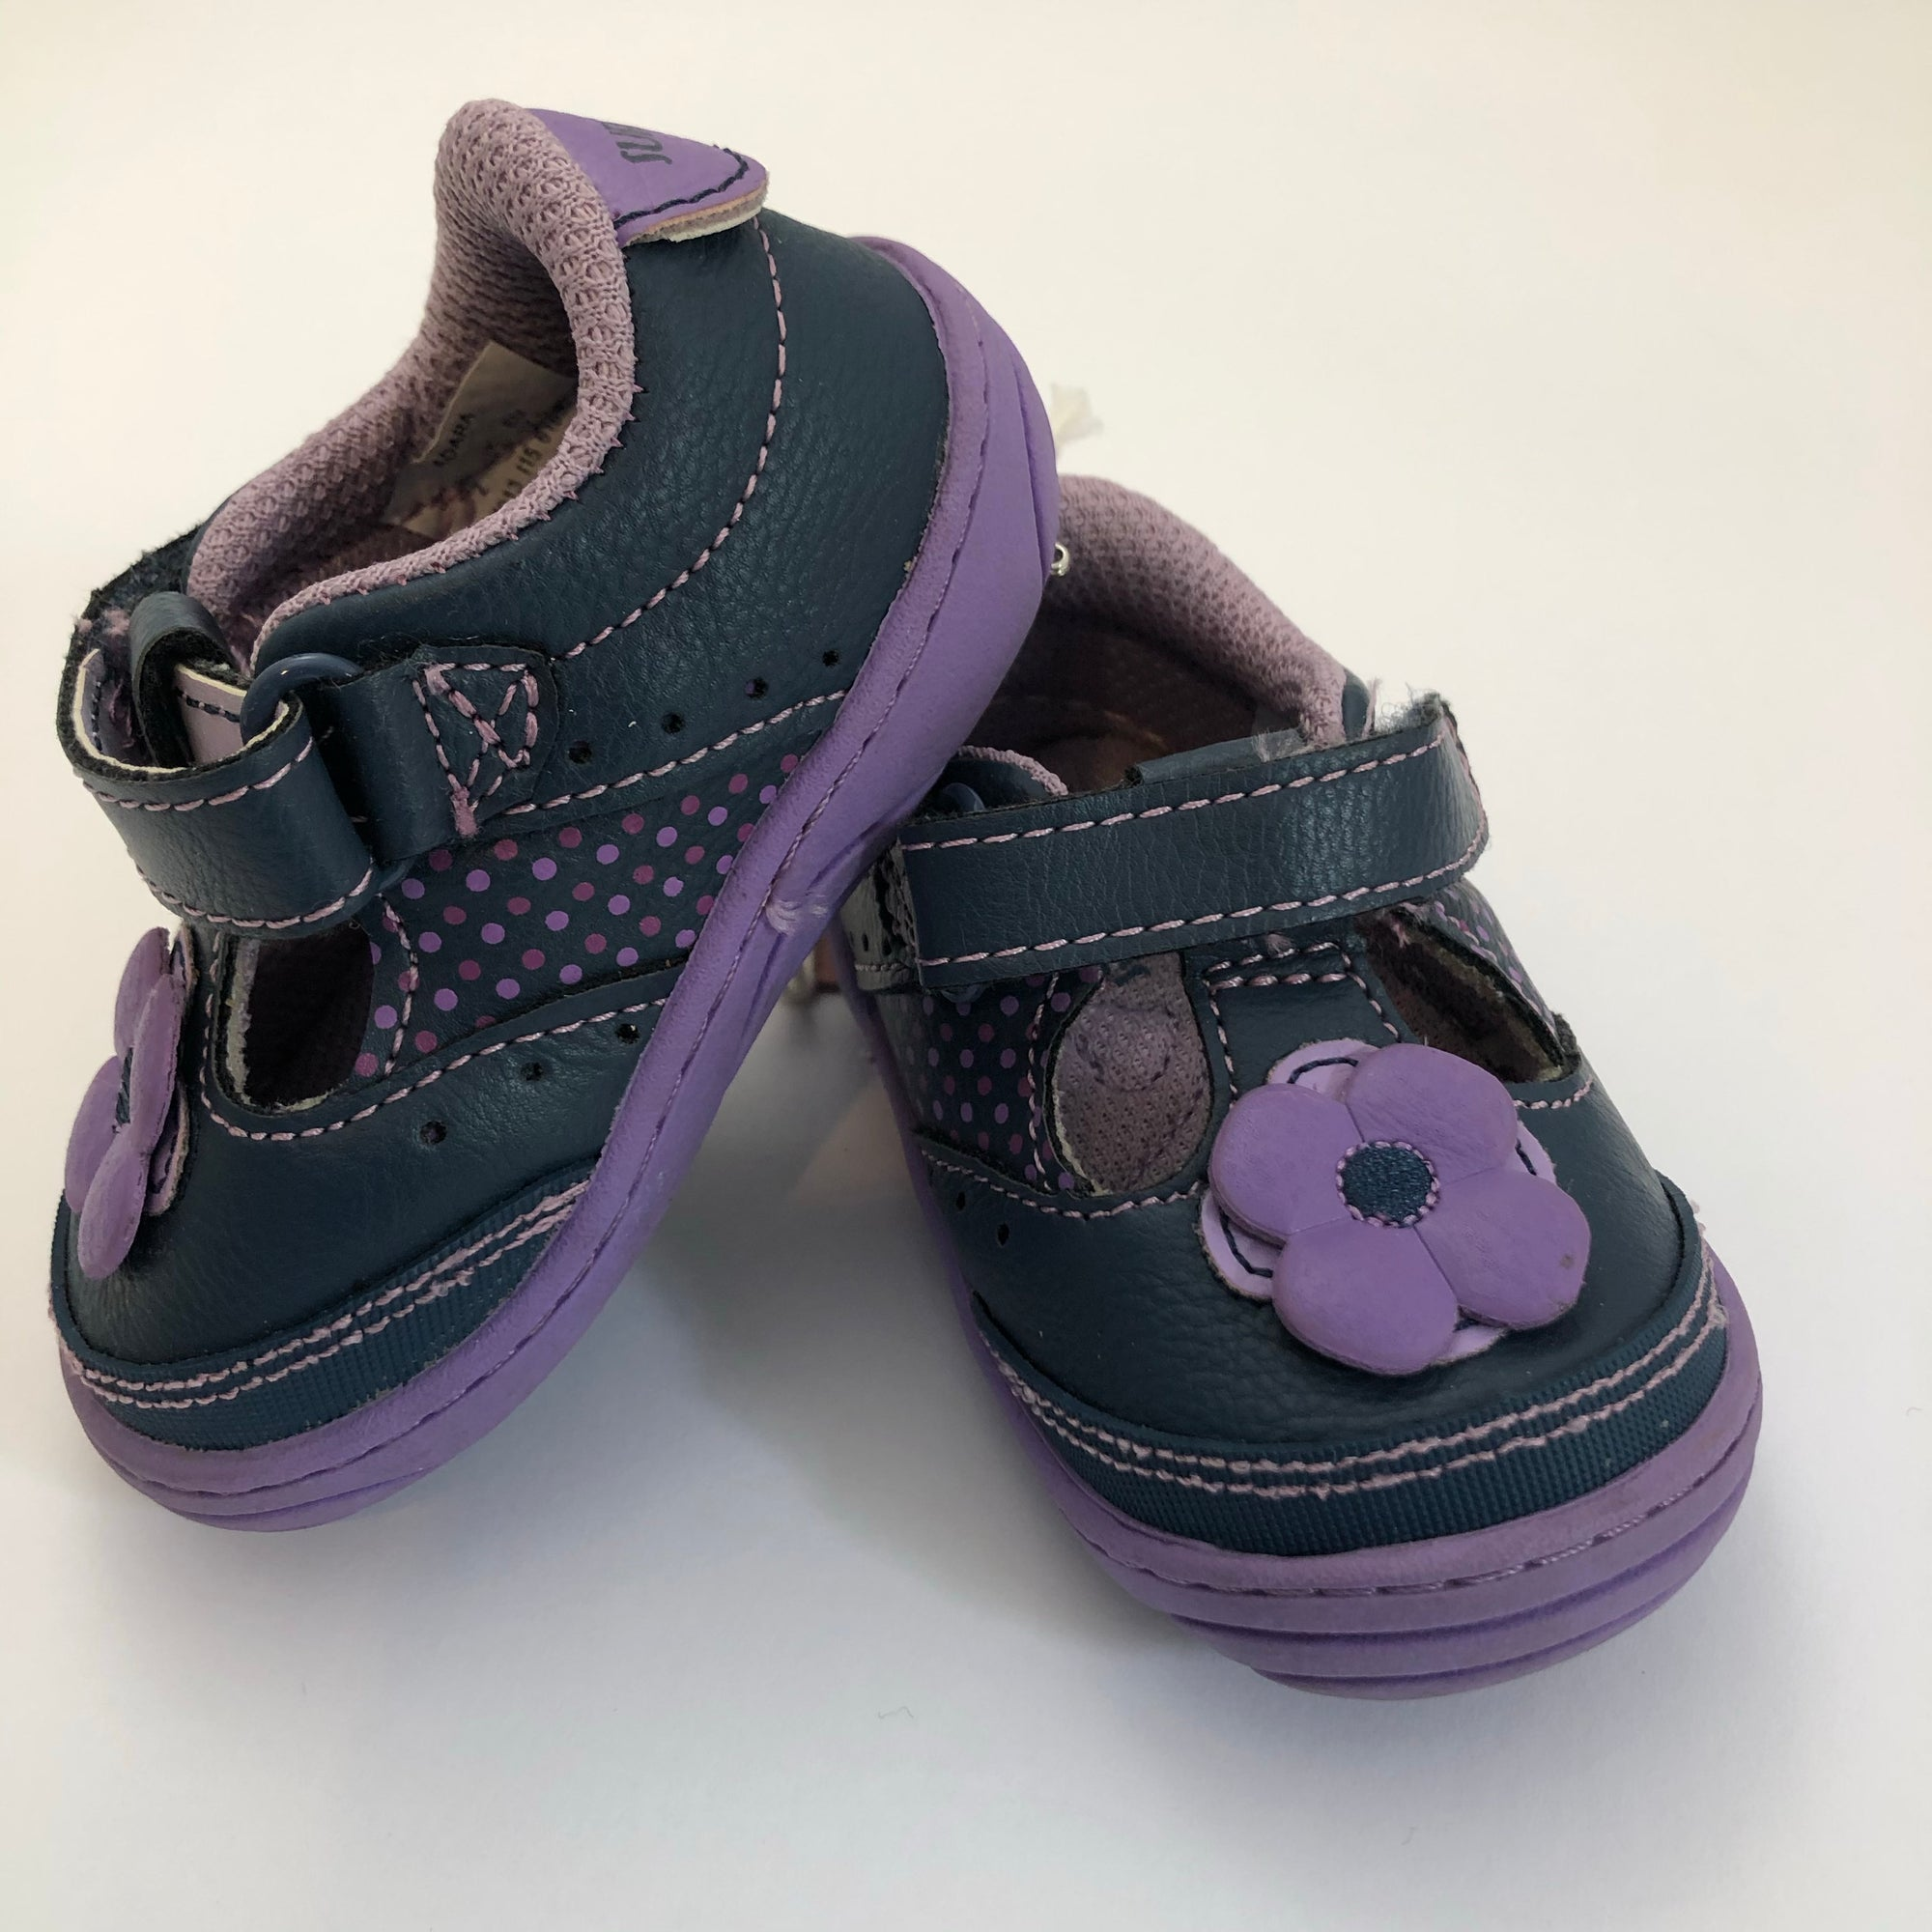 Resale C2 Surprize by Stride Rite Purple Floral Shoes